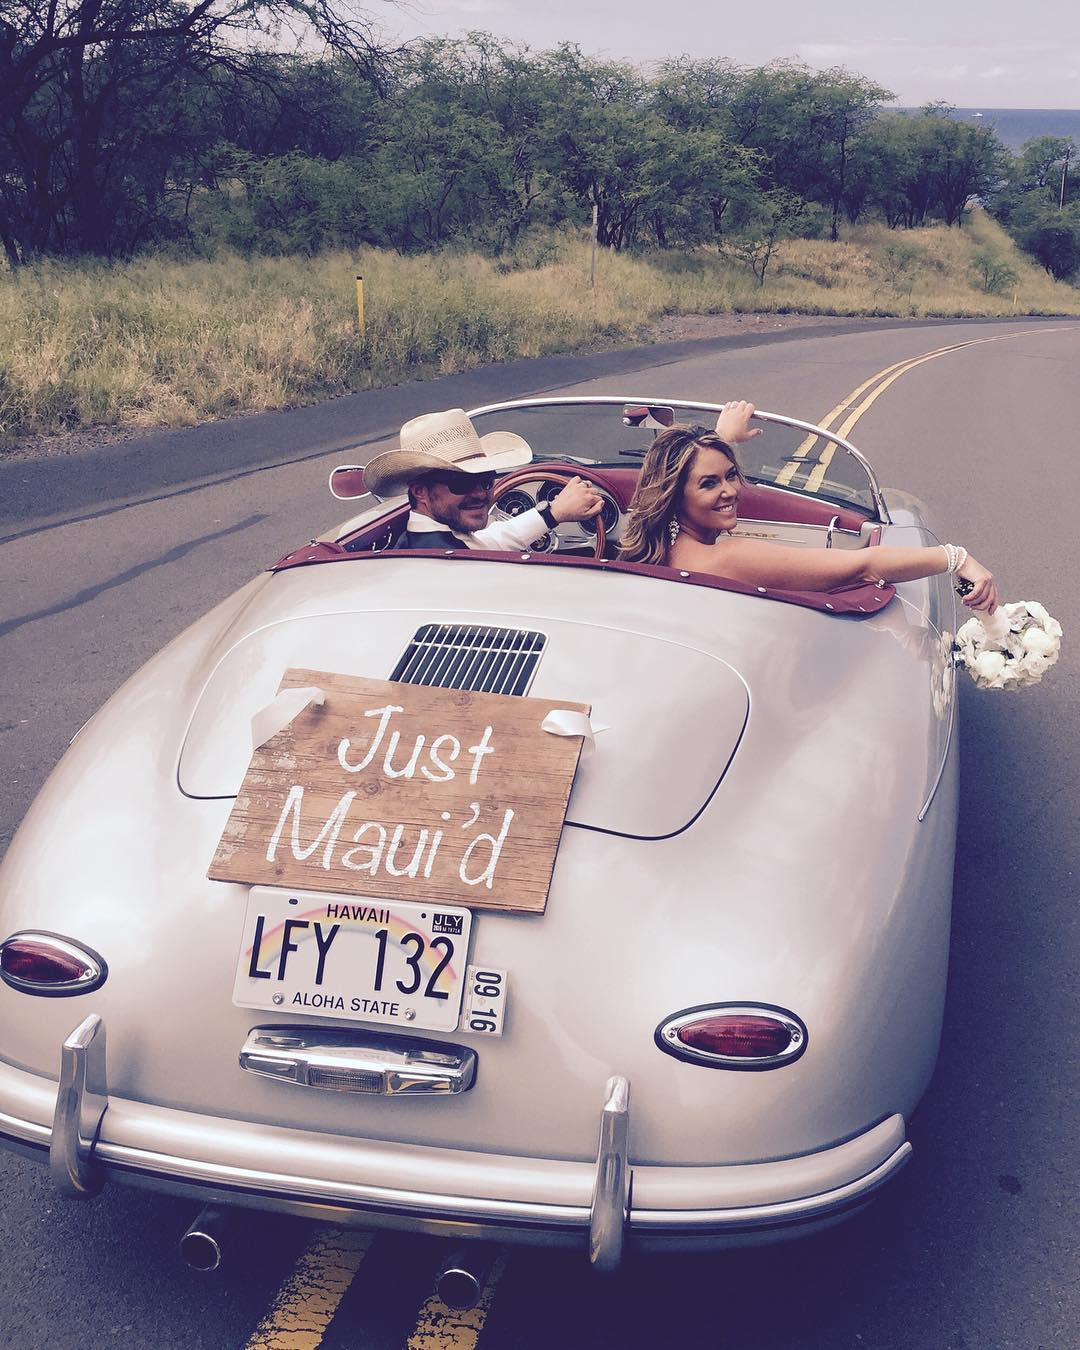 4 Well Travelled Bride Maui Roadsters Wedding Car Hire Hawaii.jpg